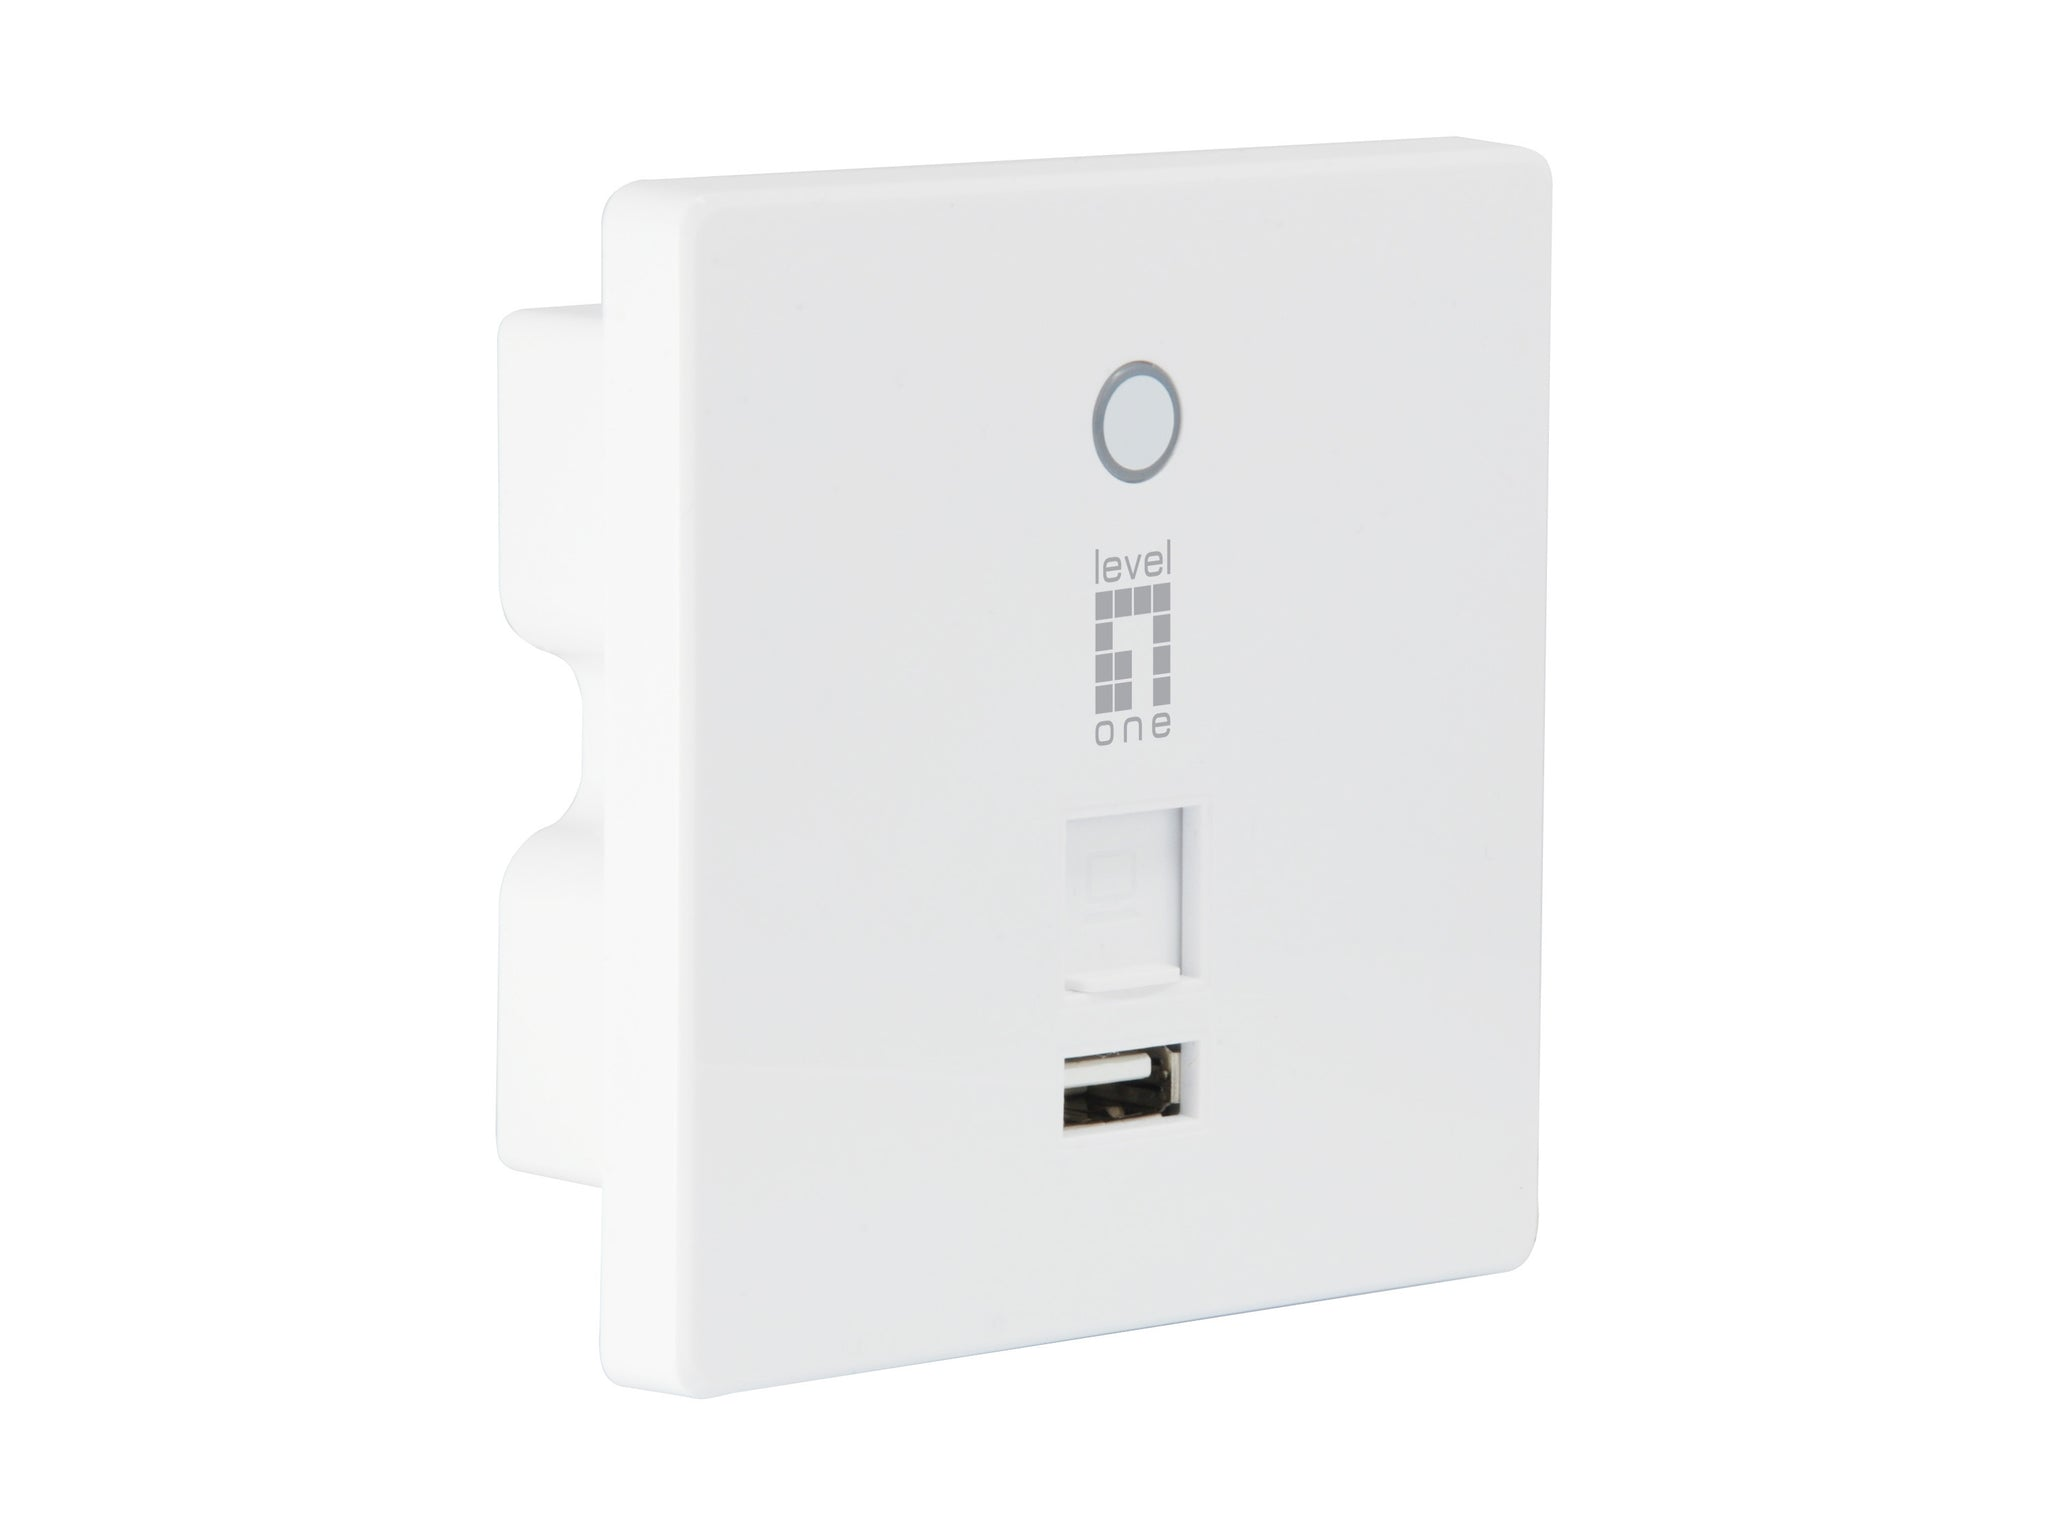 WAP-6221 N300 PoE Wireless Access Point, In-Wall Mount, Controller Managed